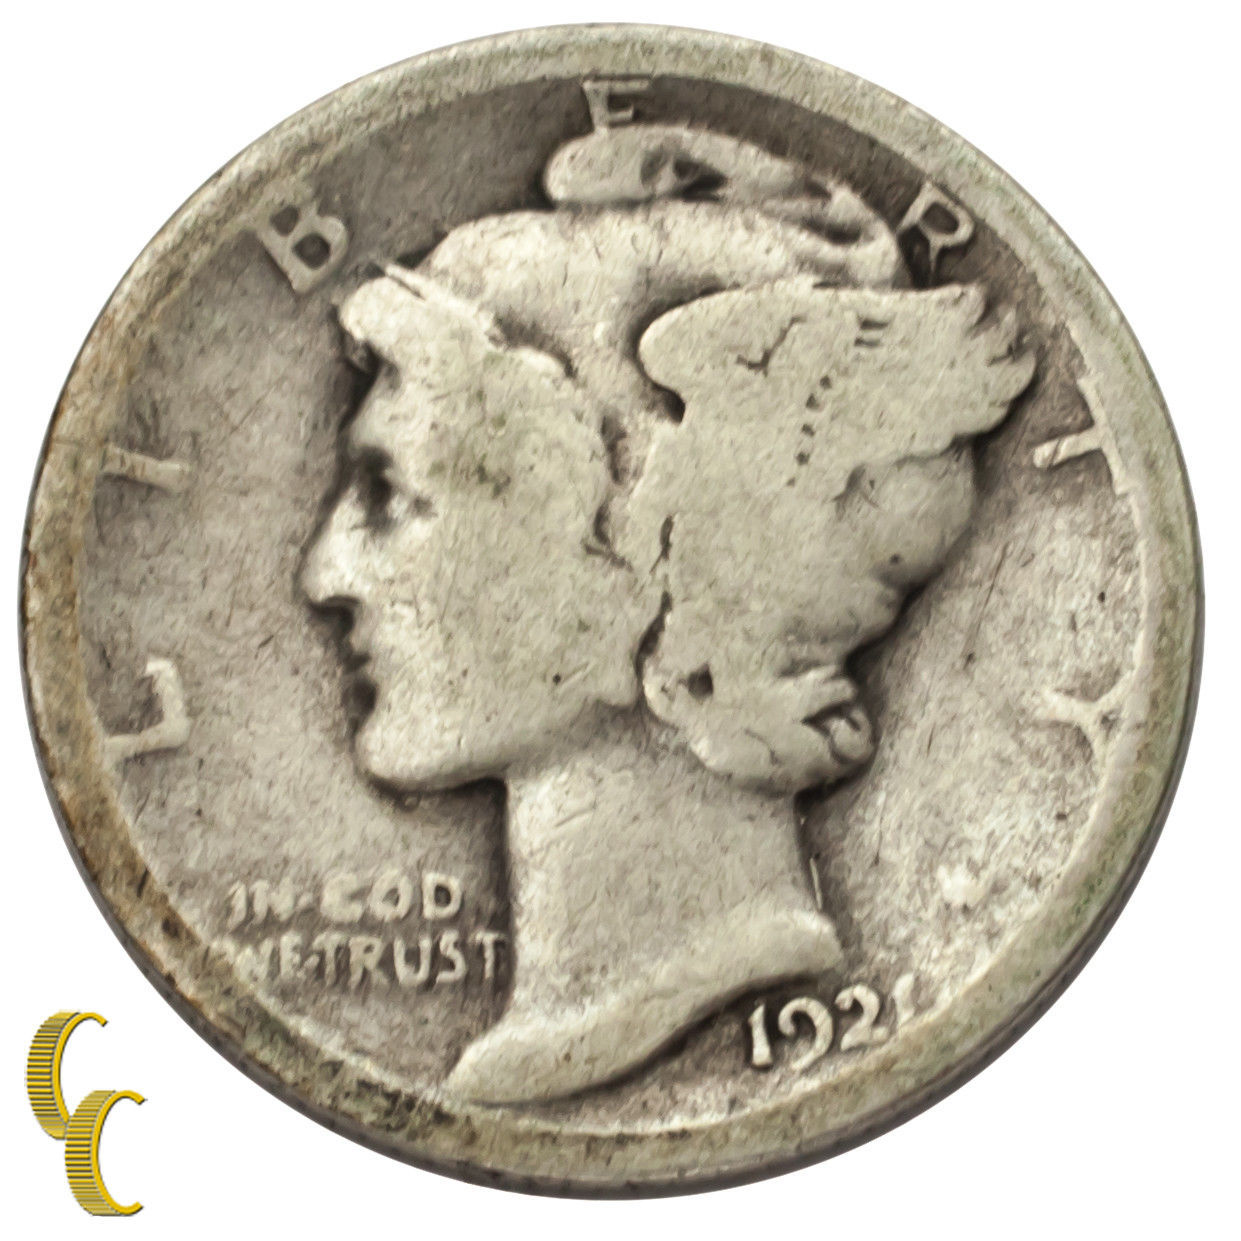 1921 Silver Mercury Dime 10C (About Good, AG Condition)